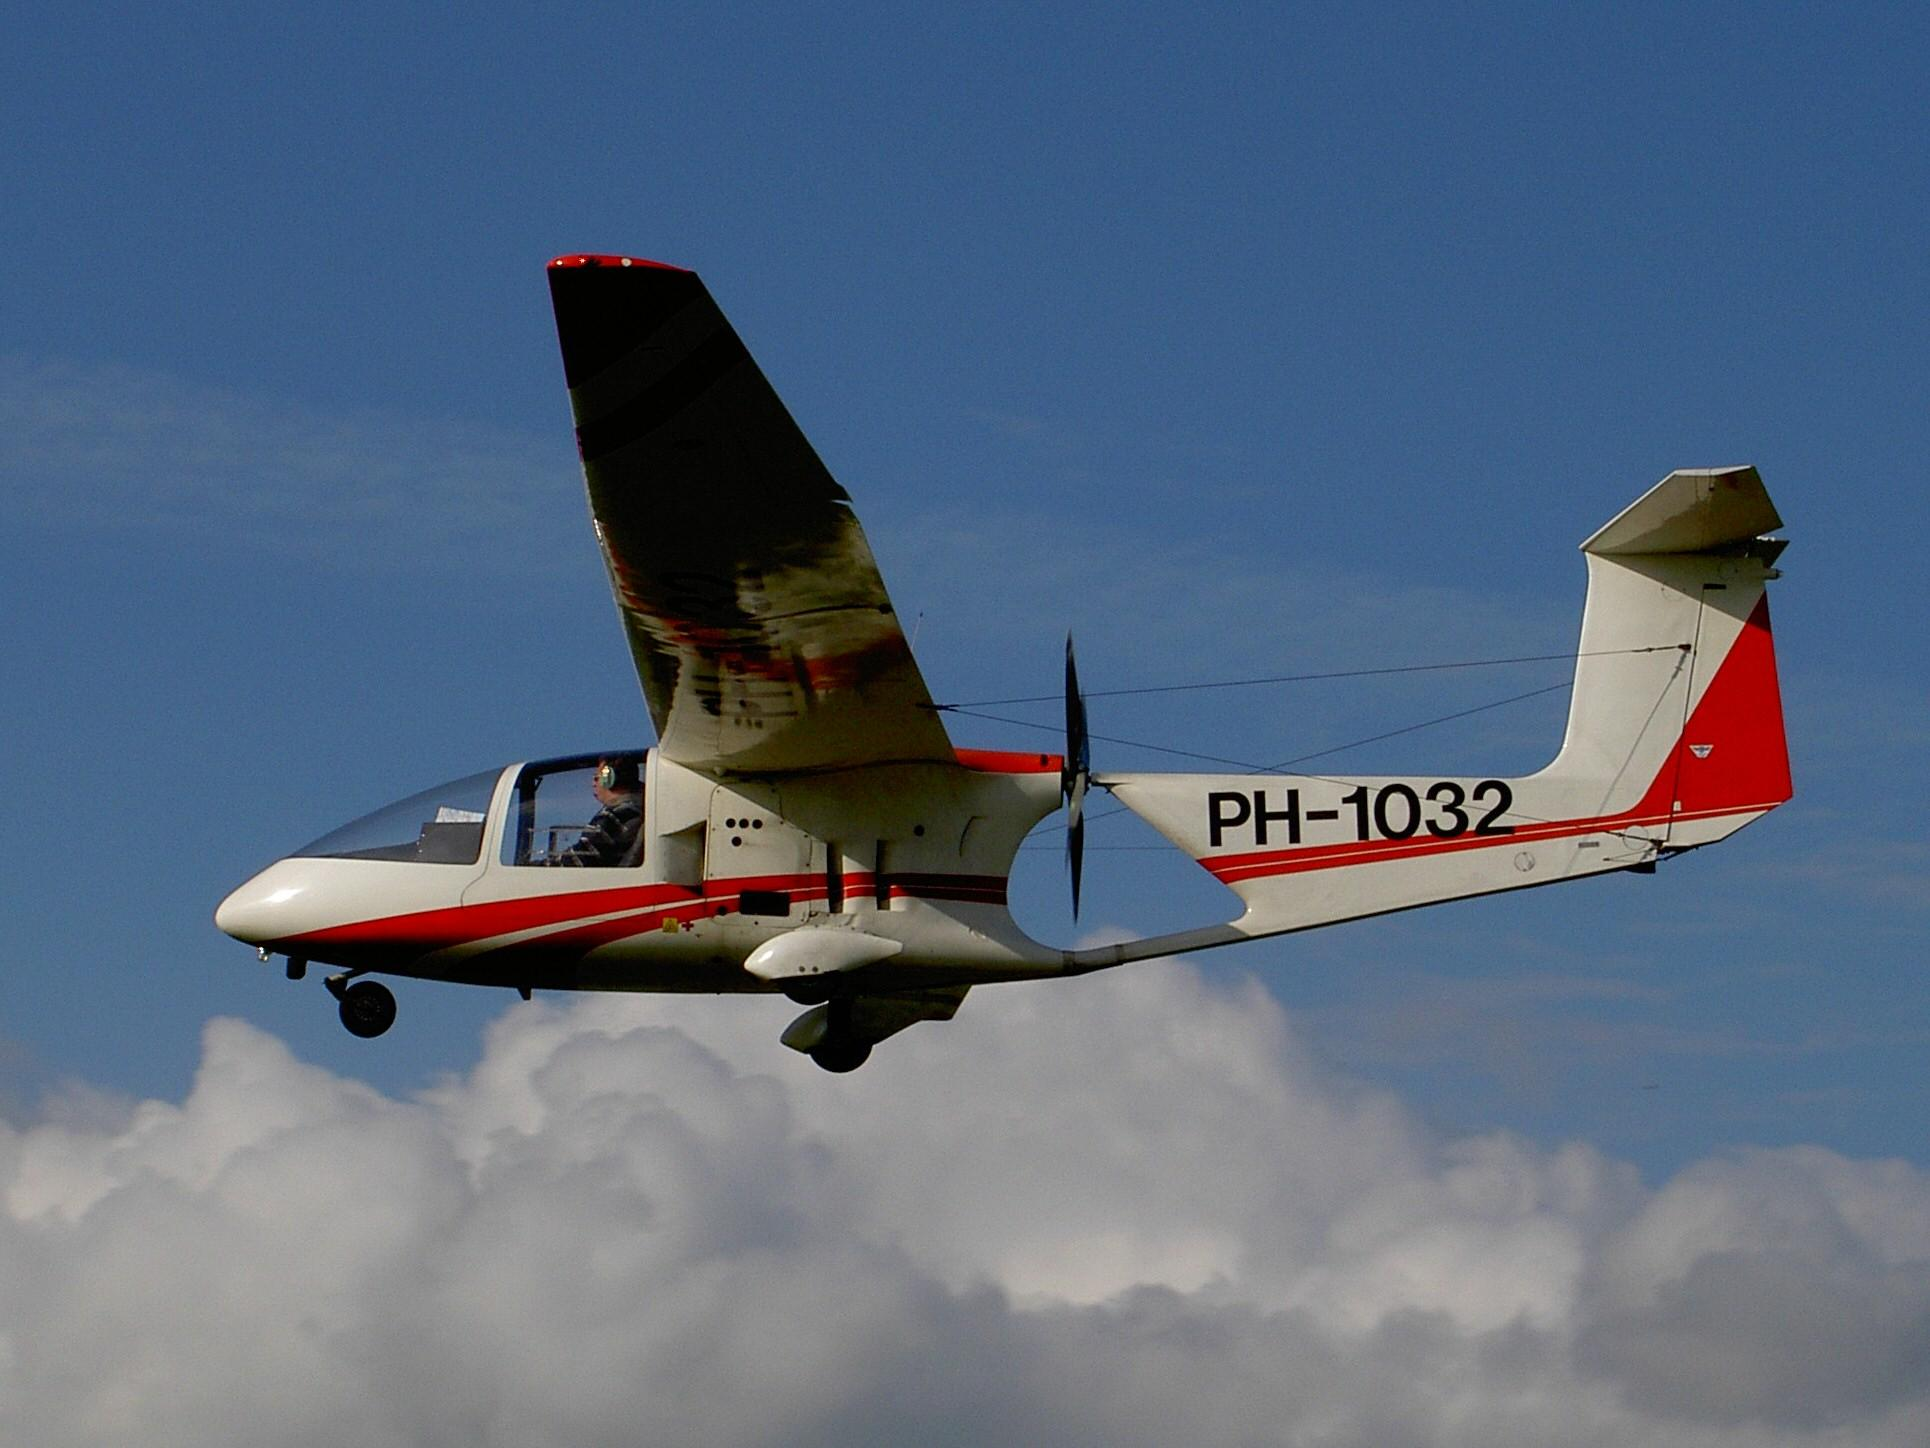 File:HB-Aircraft HB 232-400-SP PH-1032 26-